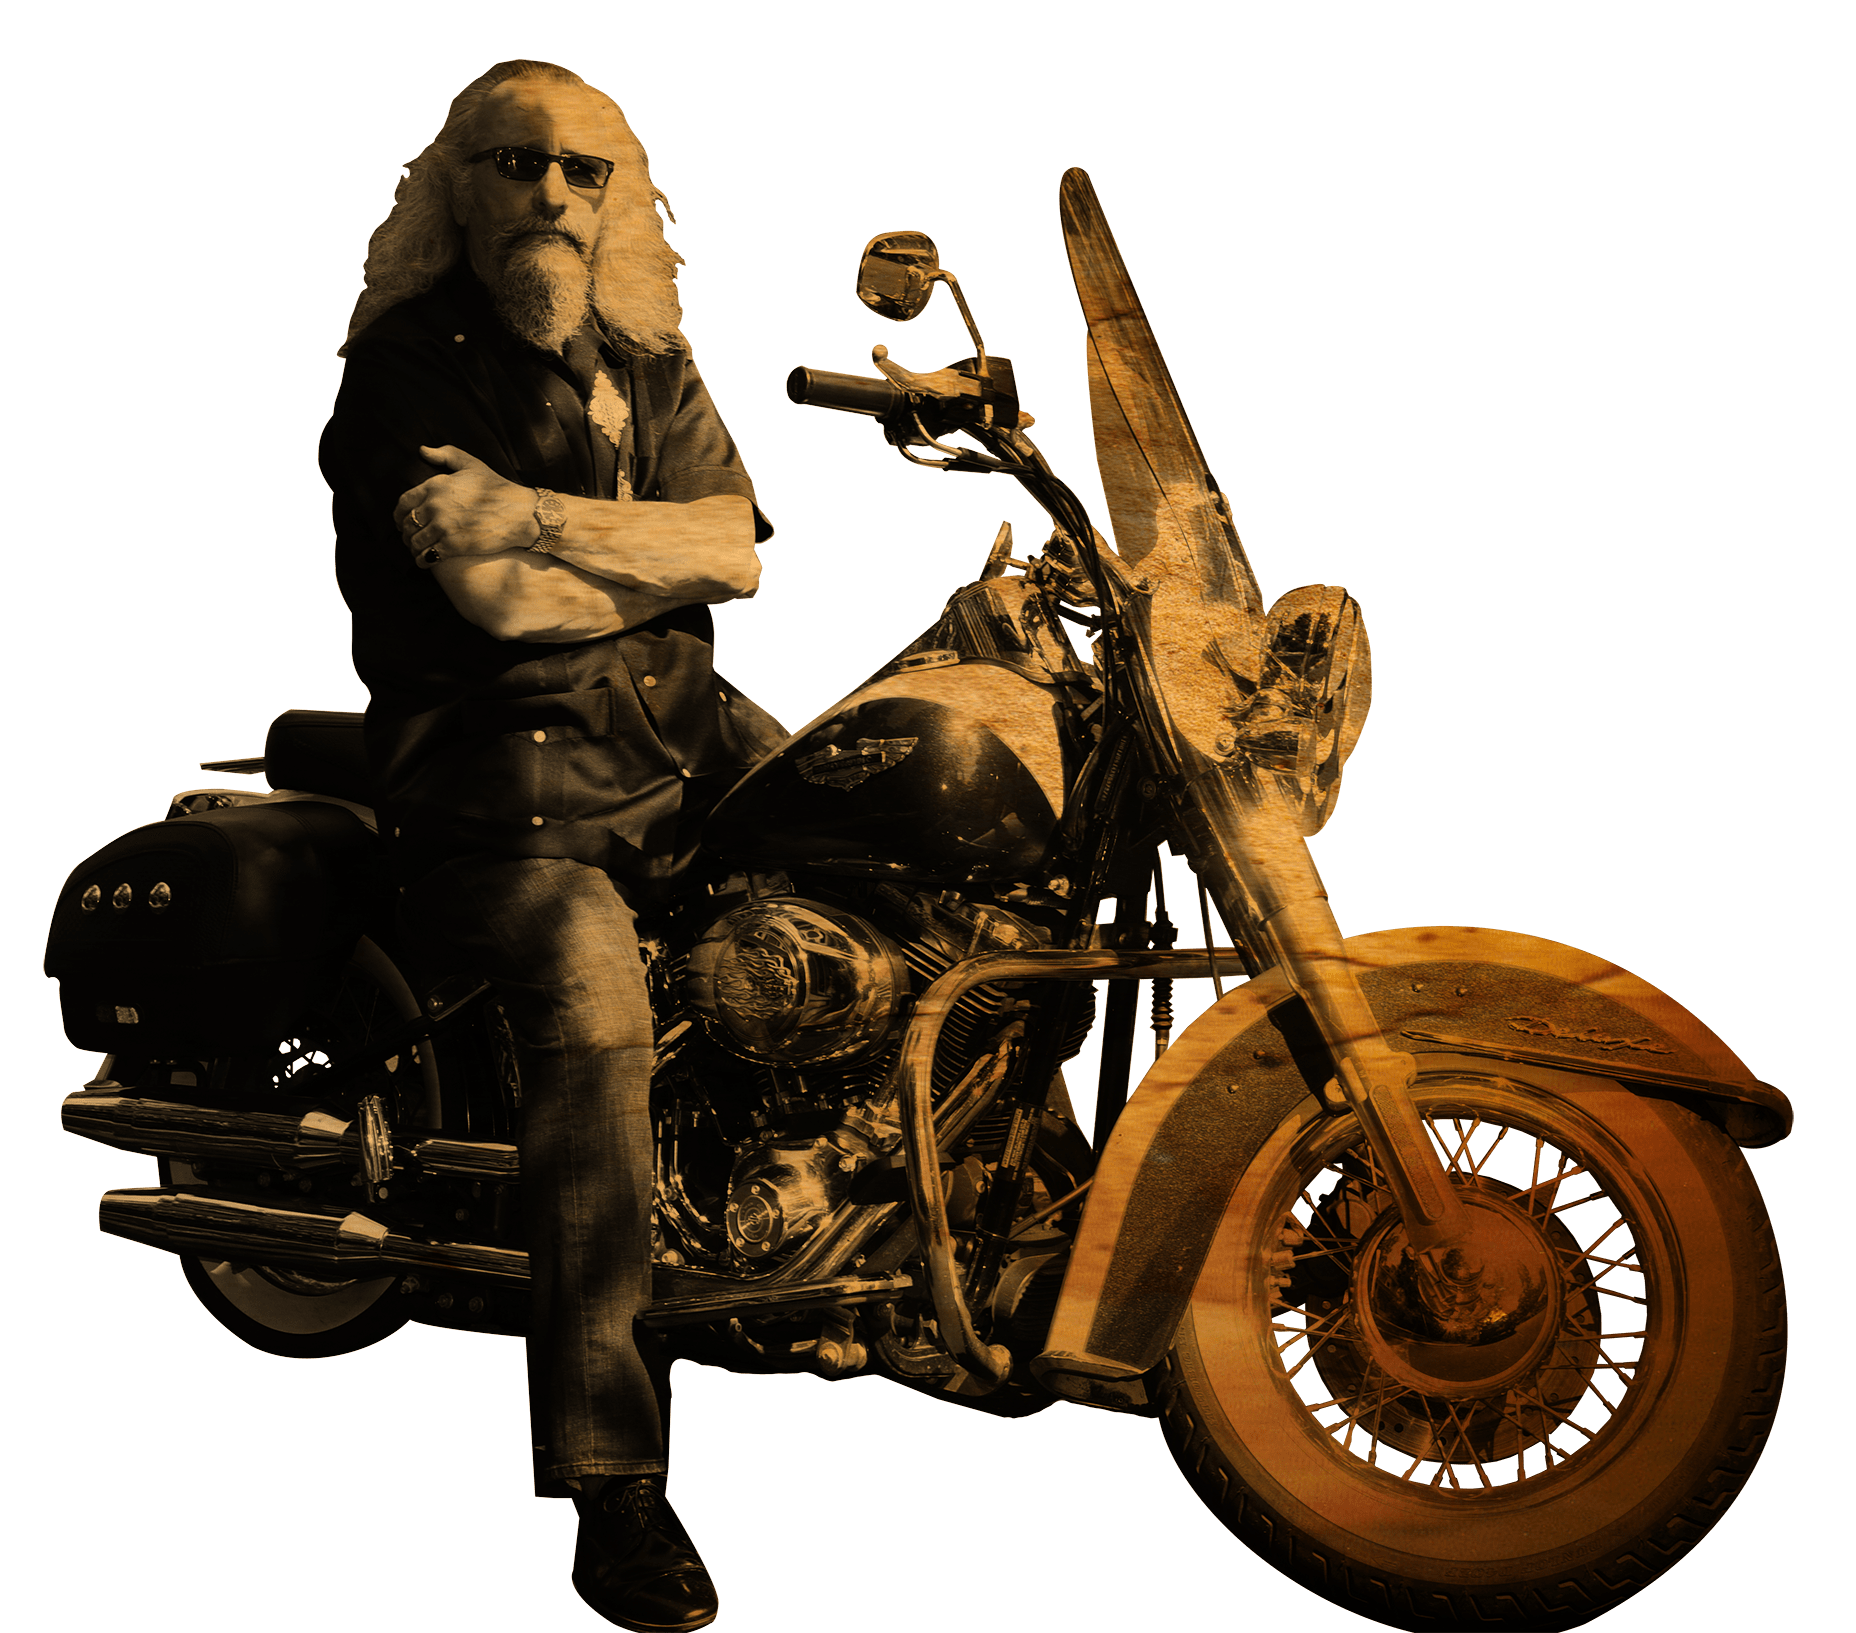 The Outlaw Steve Corbett on a motorcycle